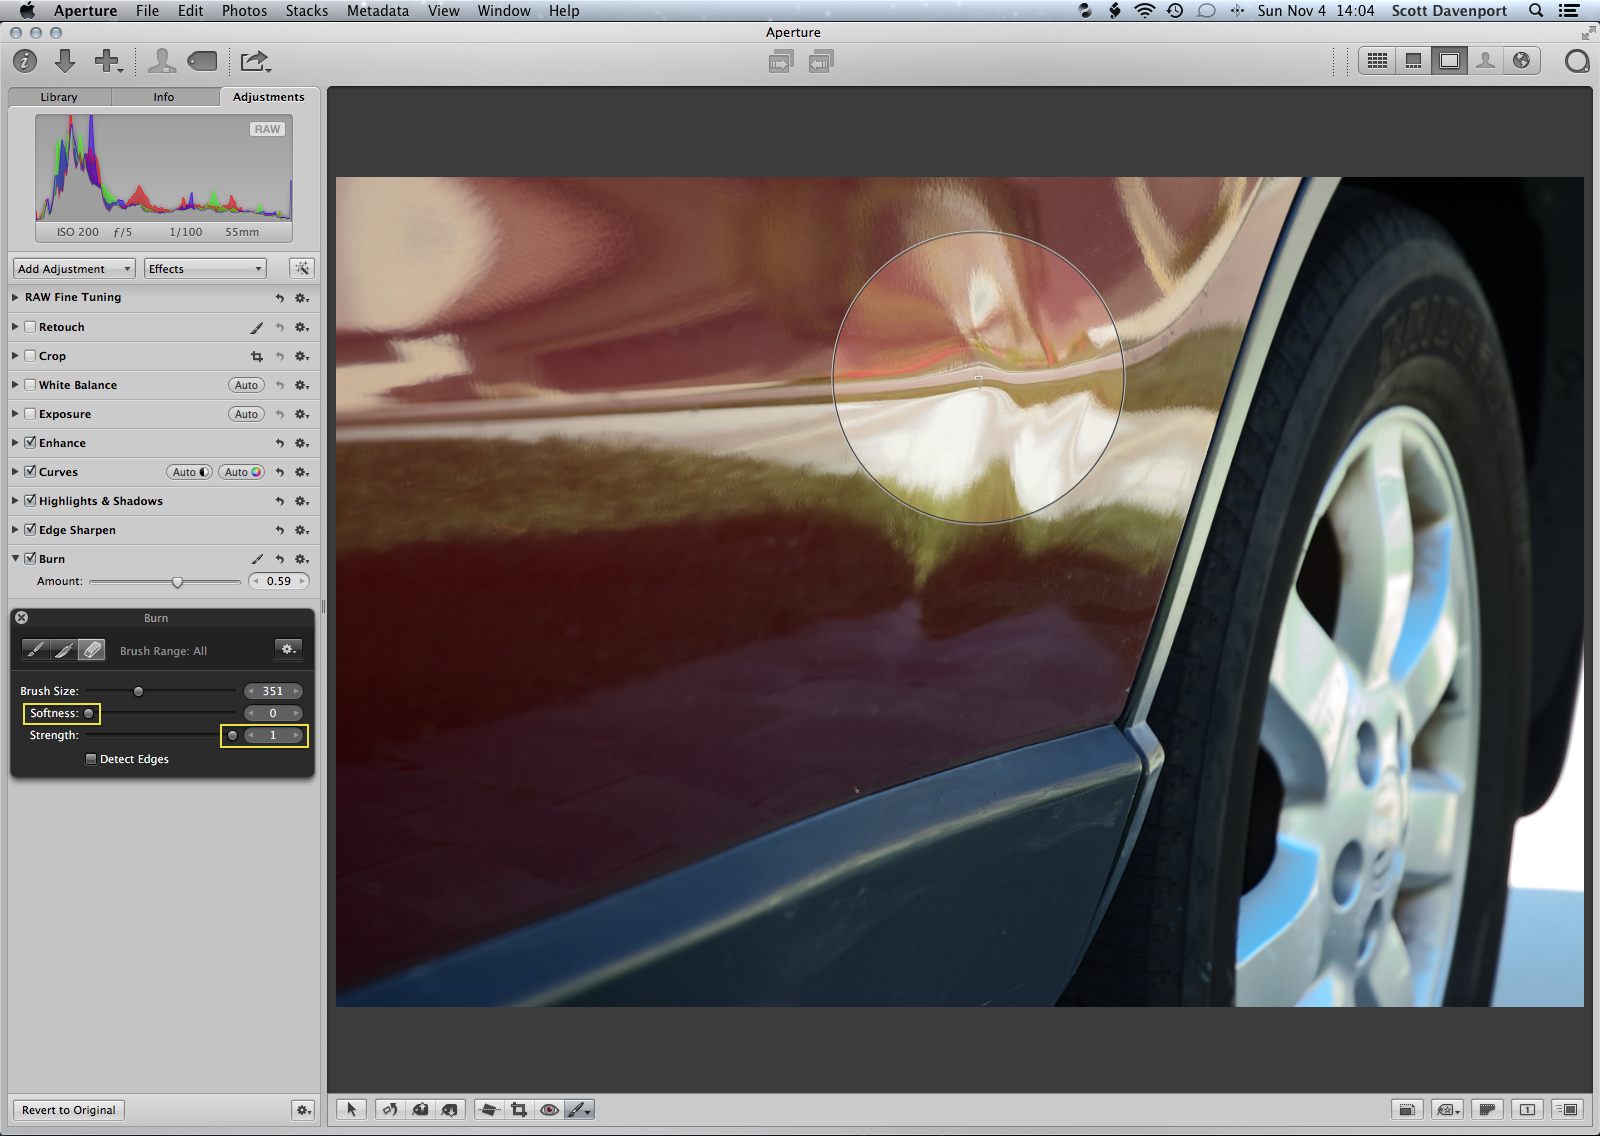 Apply 'Burn' to the entire photo, then brush away a portion with a hard-edged brush